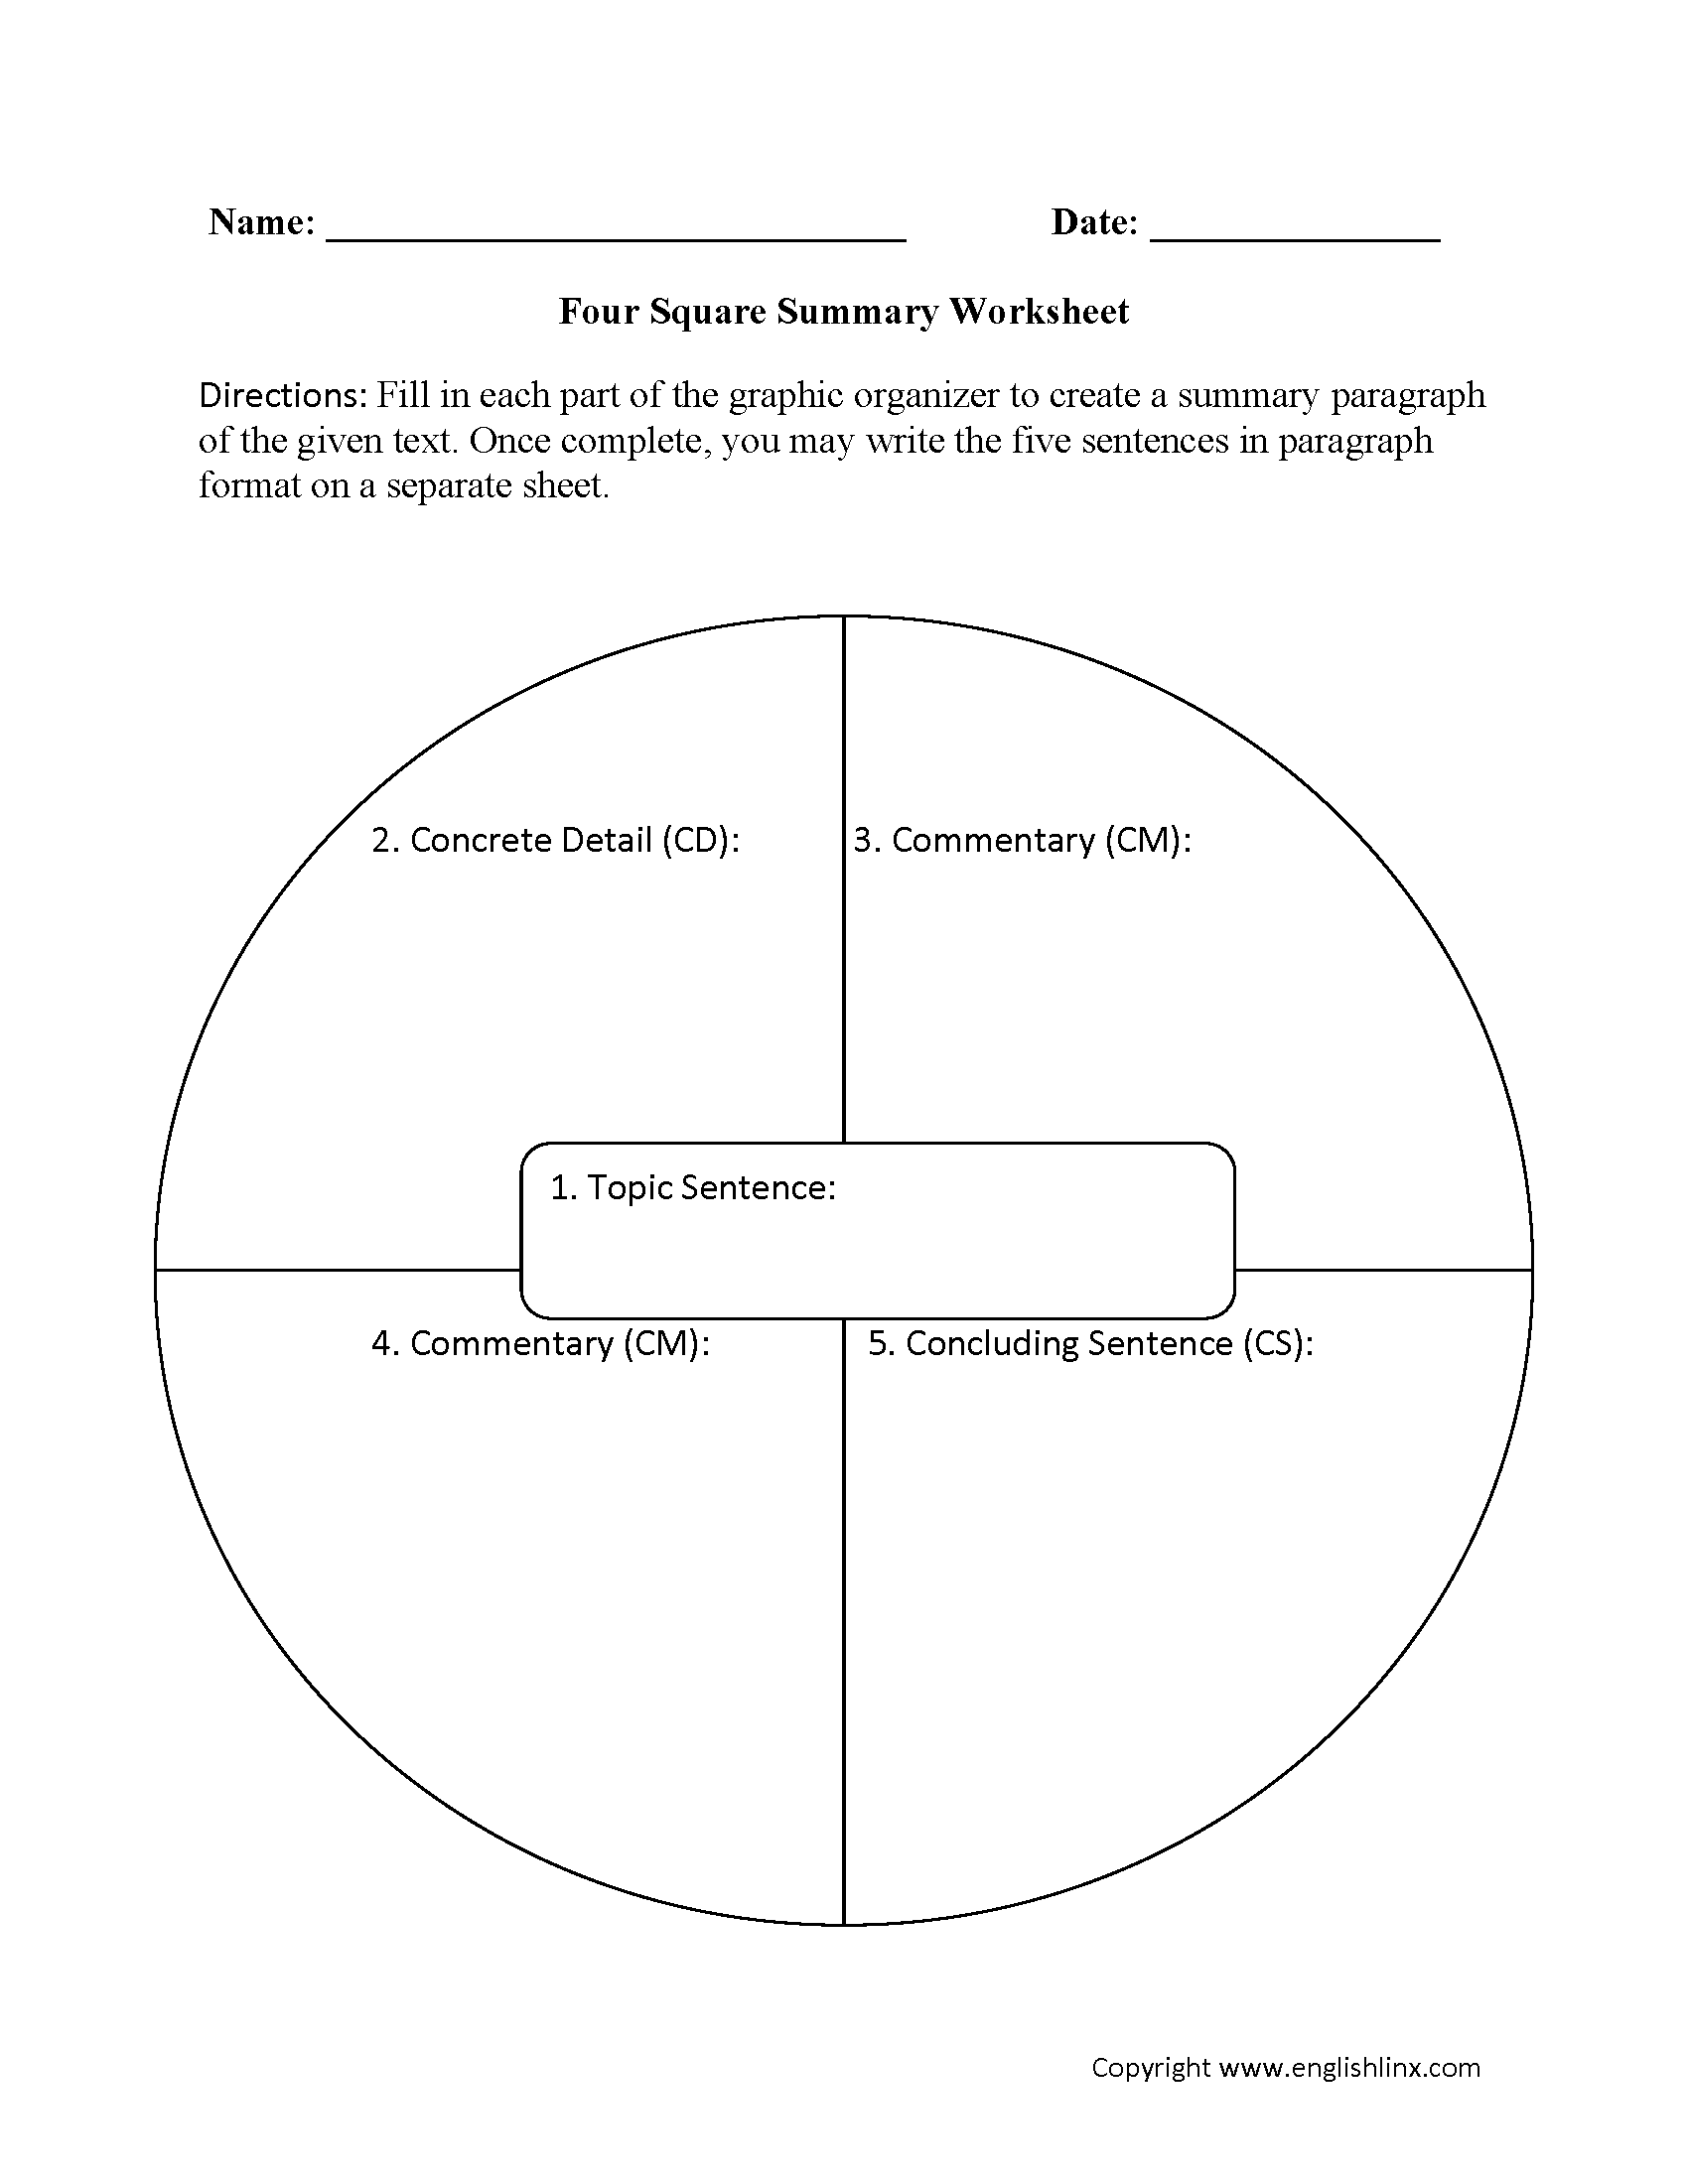 Worksheet Five Number Summary Worksheet Worksheet Fun